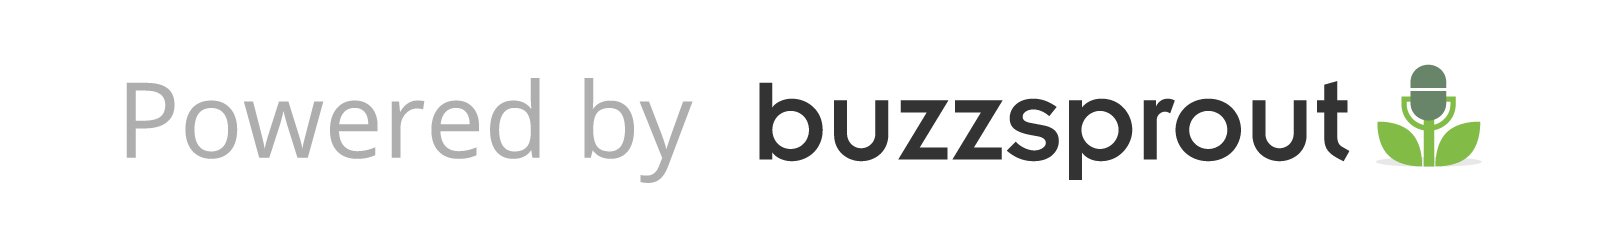 powered by buzzsprout logo